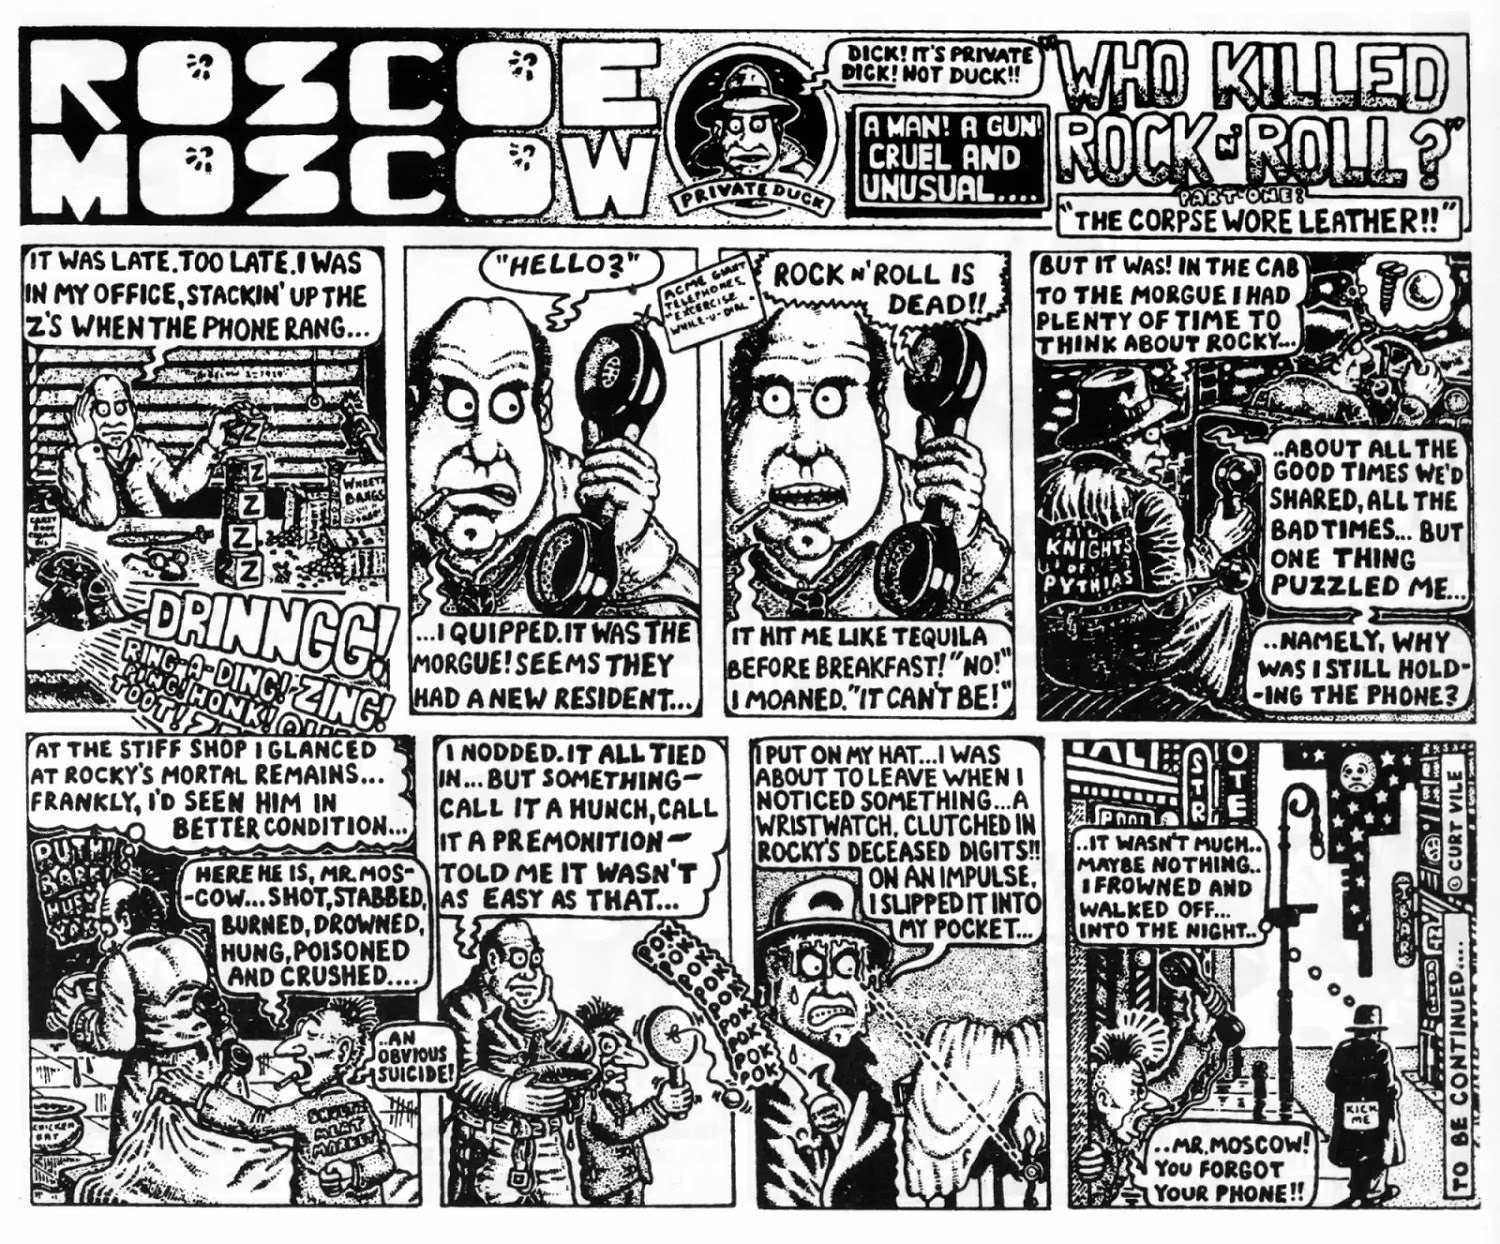 Figure 83: The First Installment Of Roscoe Moscow: Who Killed Rock N' Roll  (alan Moore, 1979, As Curt Vile)